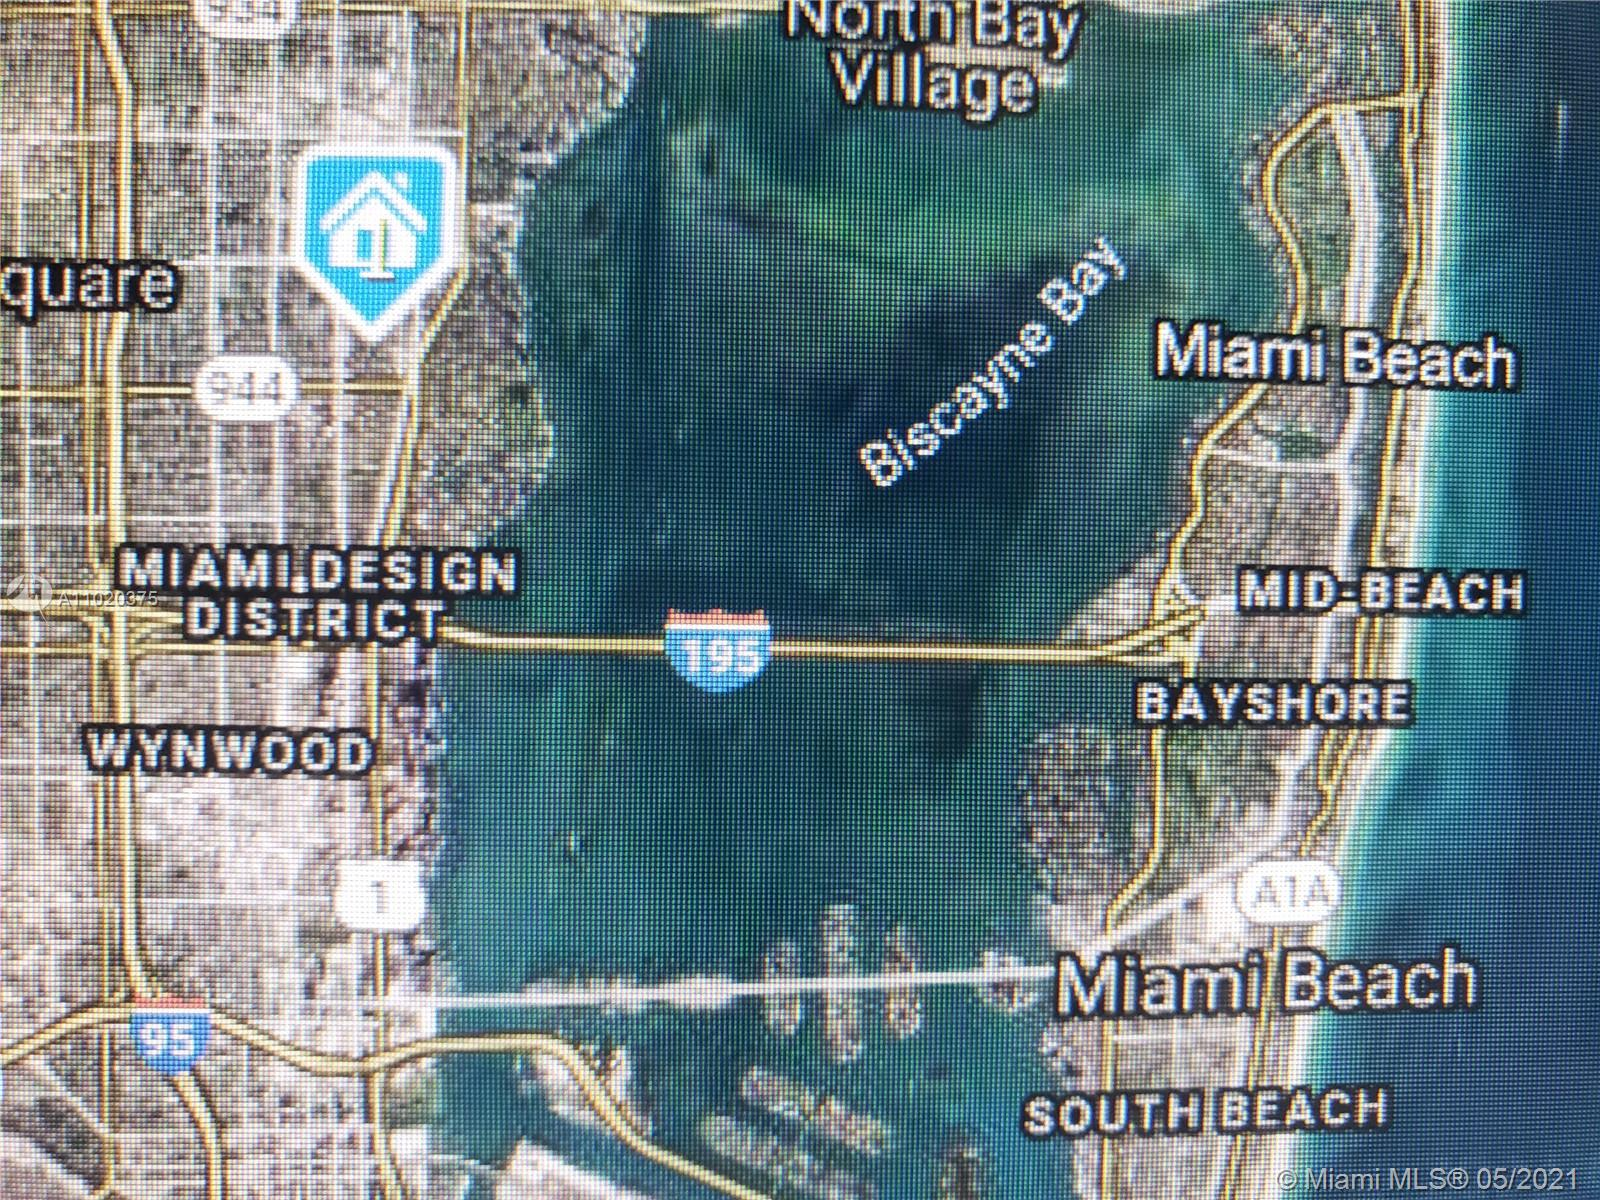 Great NE Location, walking distance to the Design District, Midtown, Biscayne Blvd. 10 minutes to Miami Beach airport & downtown. Single family being sold As Is for land value. Unsafe structure with possible violations This property is priced for a quick sell. ( Zoning 5700 / Duplexes - General )